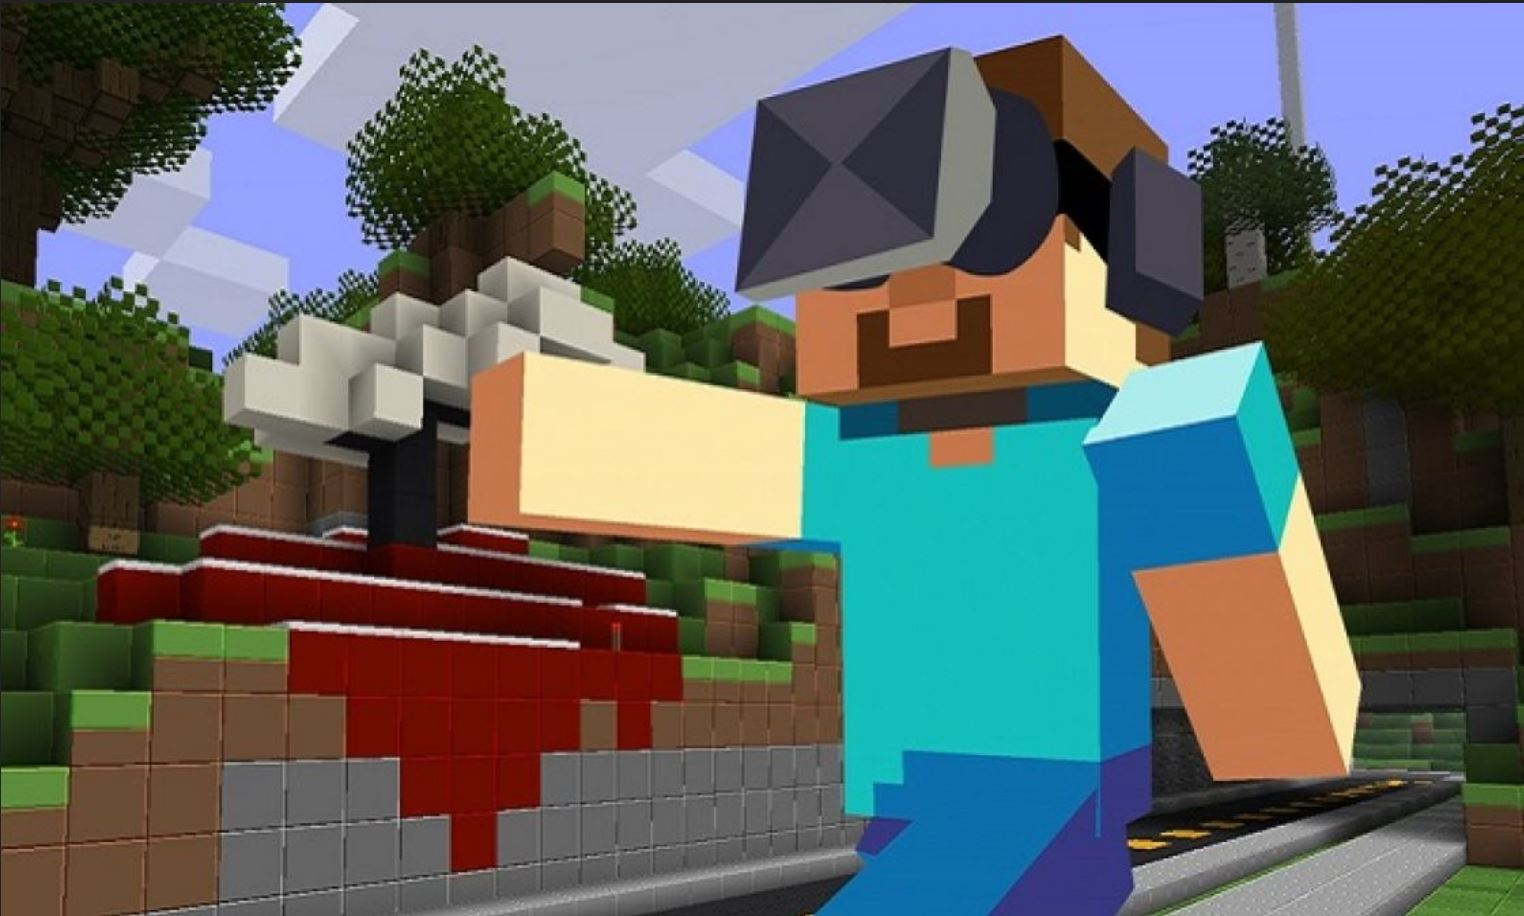 Minecraft VR, Which Is Only On PCs, Was Running On The Oculus Quest Stated John Carmack